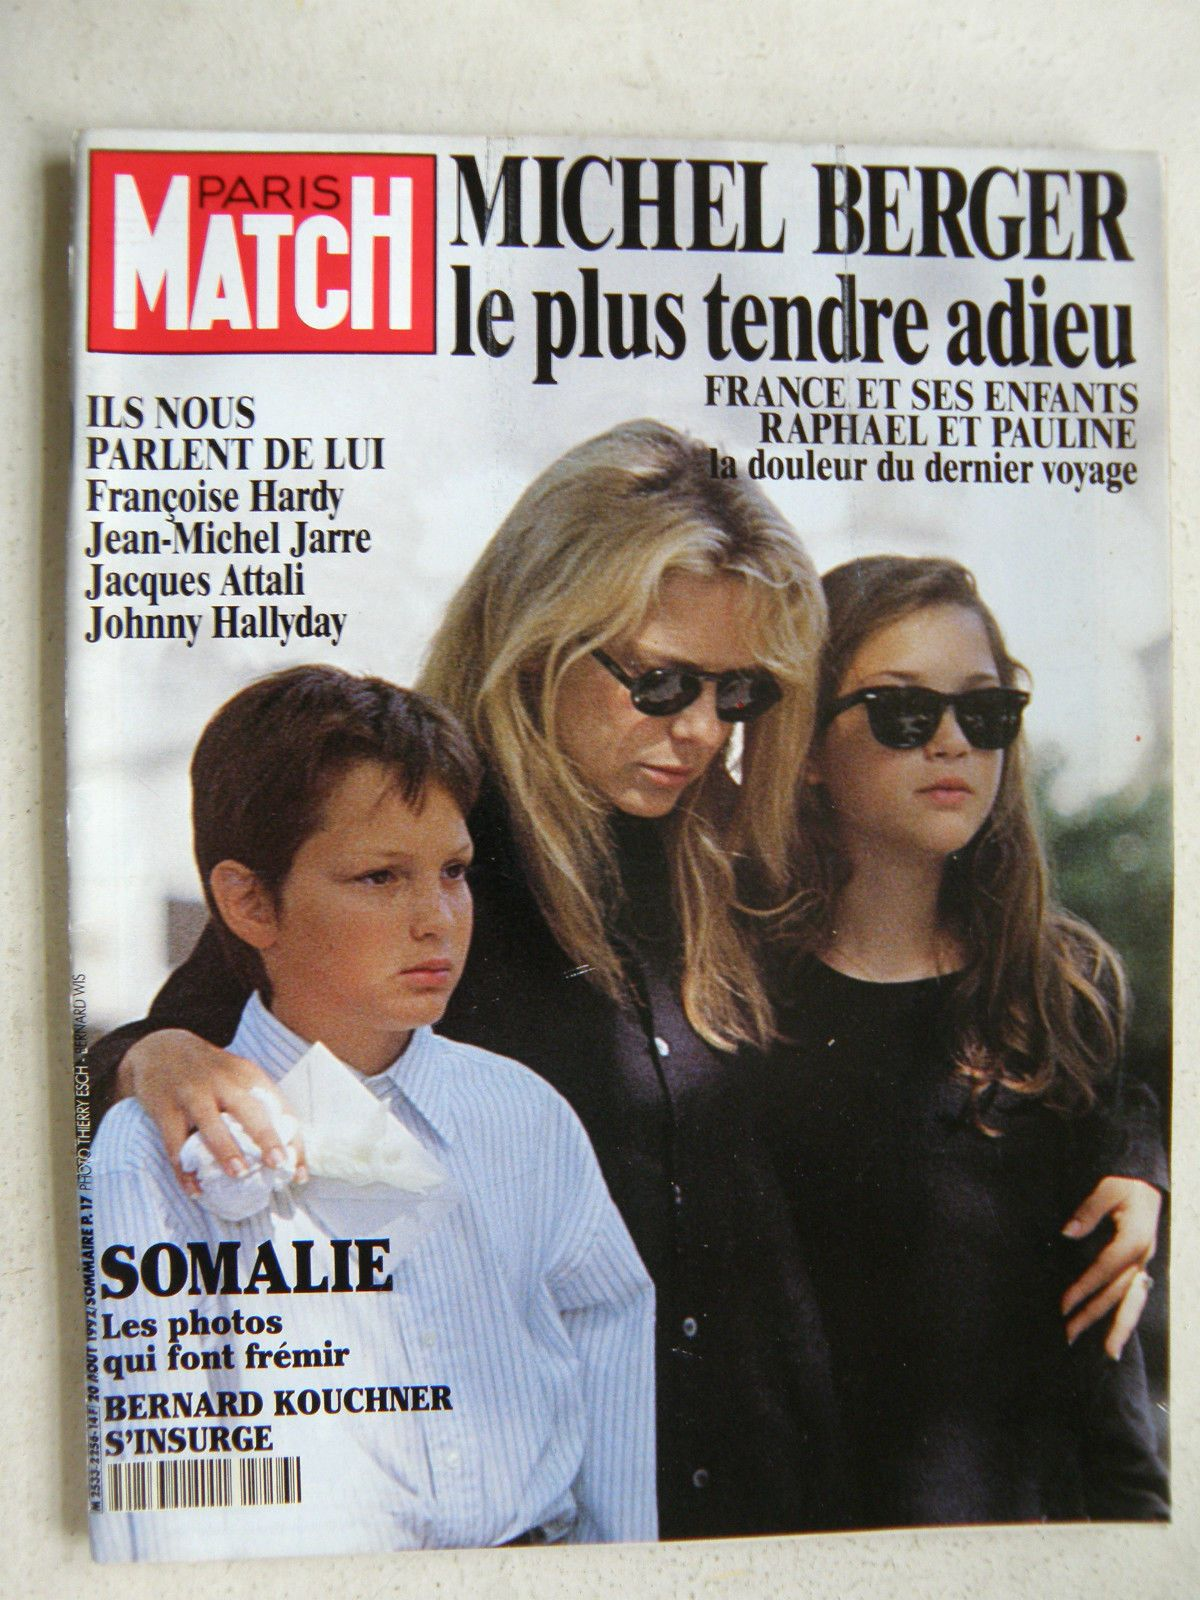 france gall femmes en couvertures de paris match pinterest france gall france et enfants. Black Bedroom Furniture Sets. Home Design Ideas